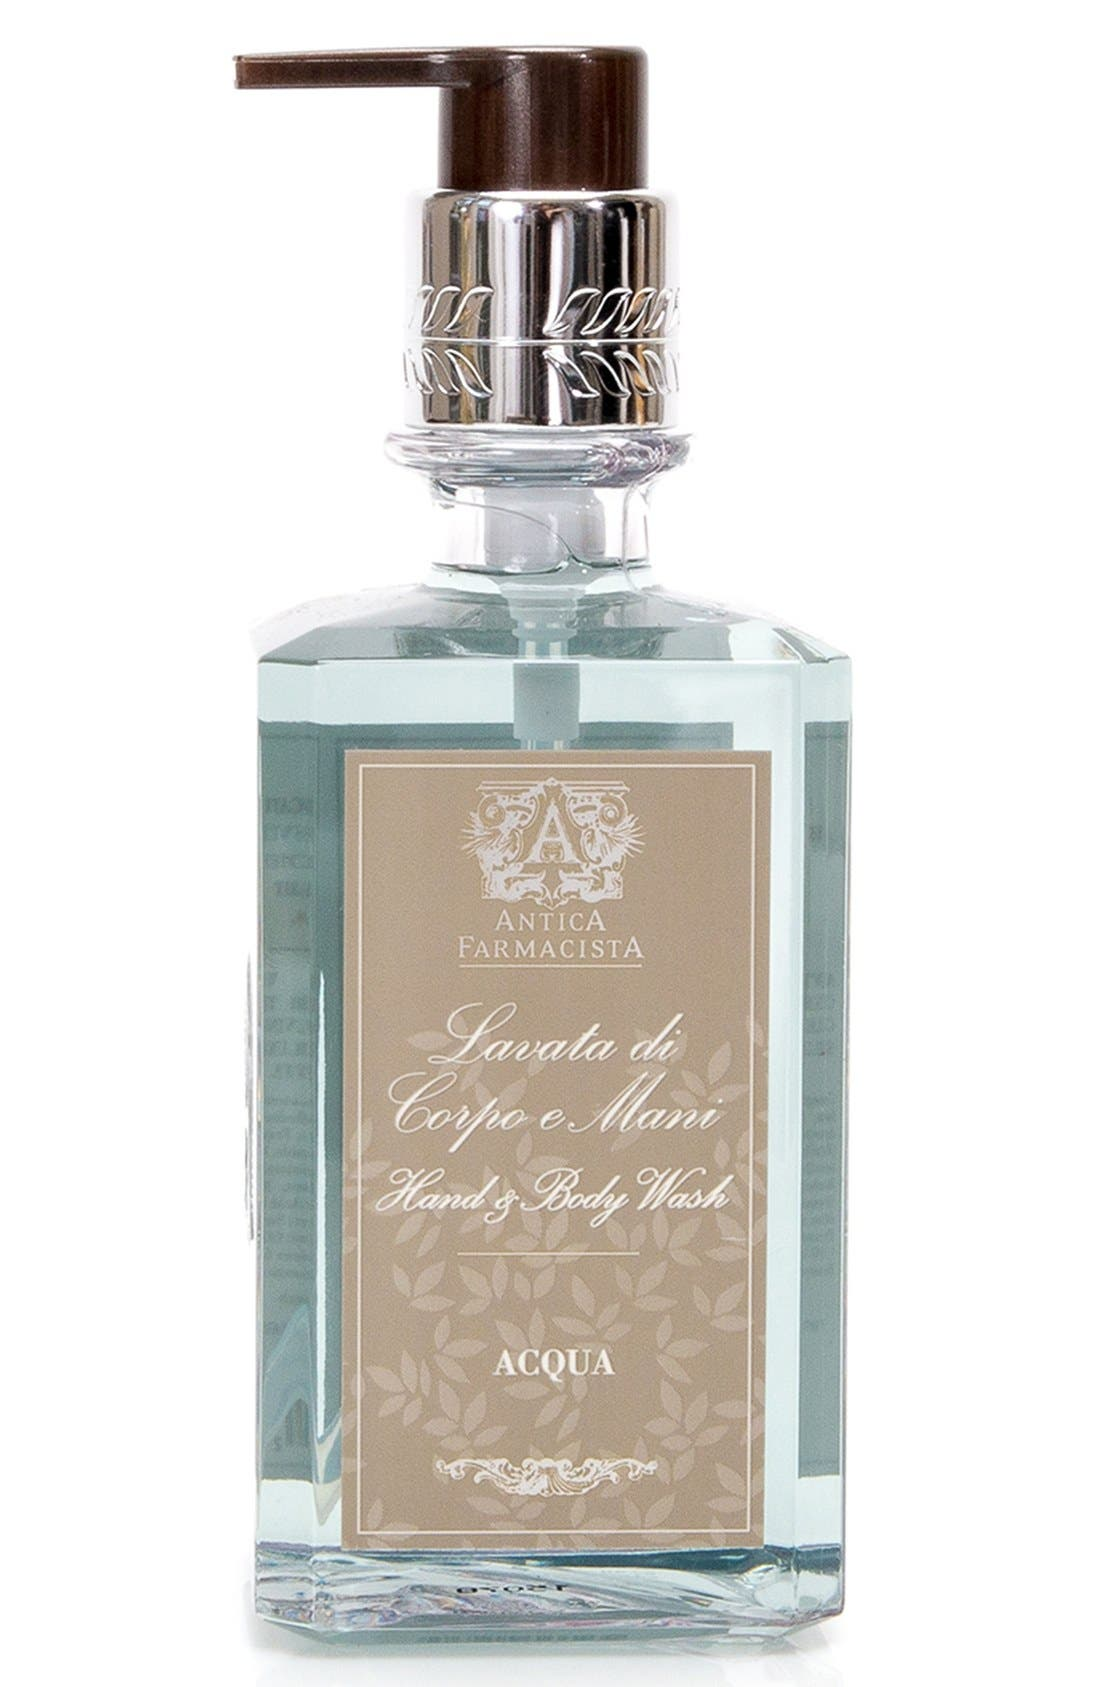 Antica Farmacista 'Acqua' Hand Wash